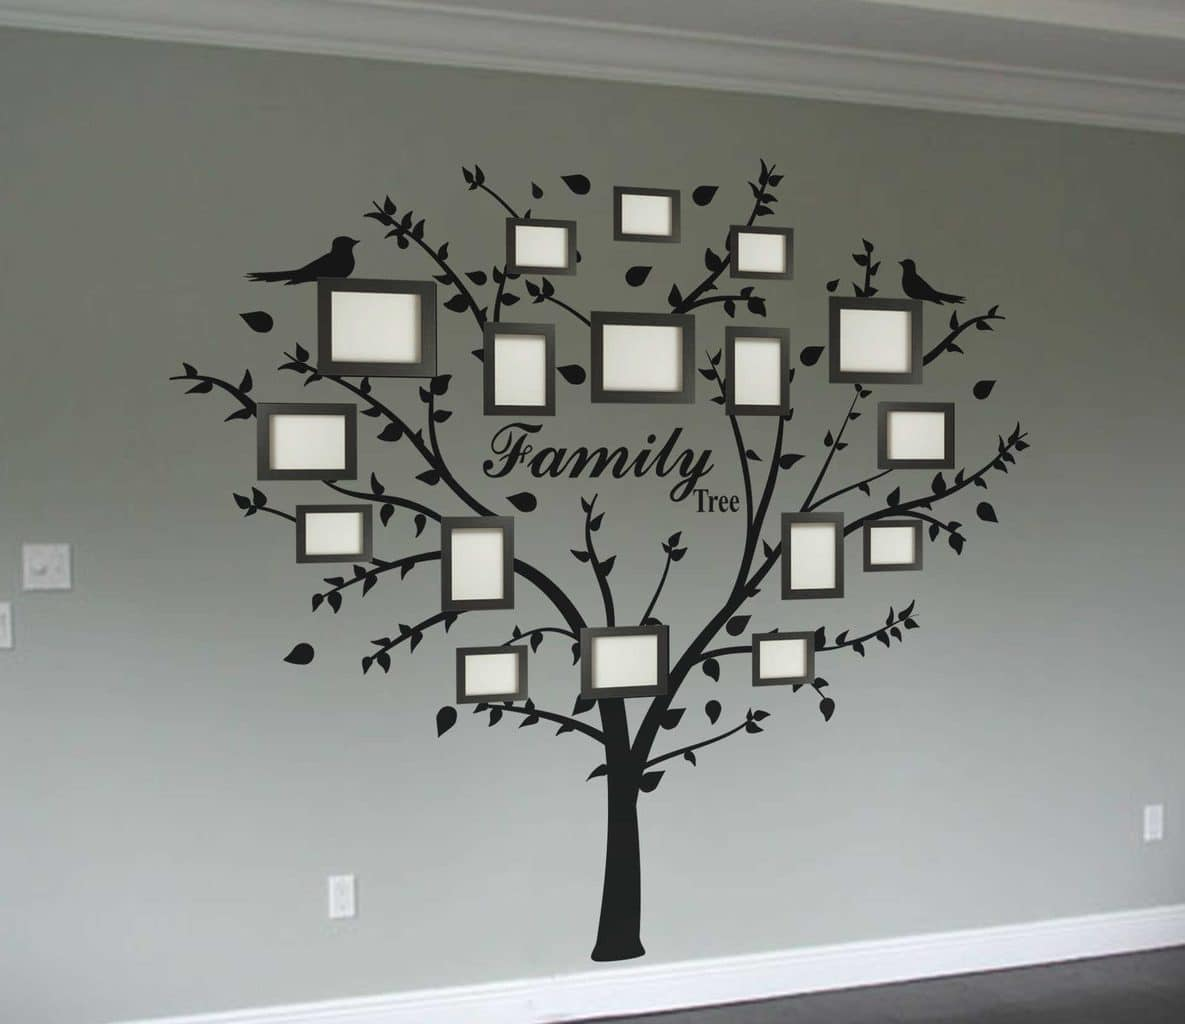 Family photo tree wall decal | wall decal sticker tree wall decals & Family photo tree wall decal | wall art decal sticker